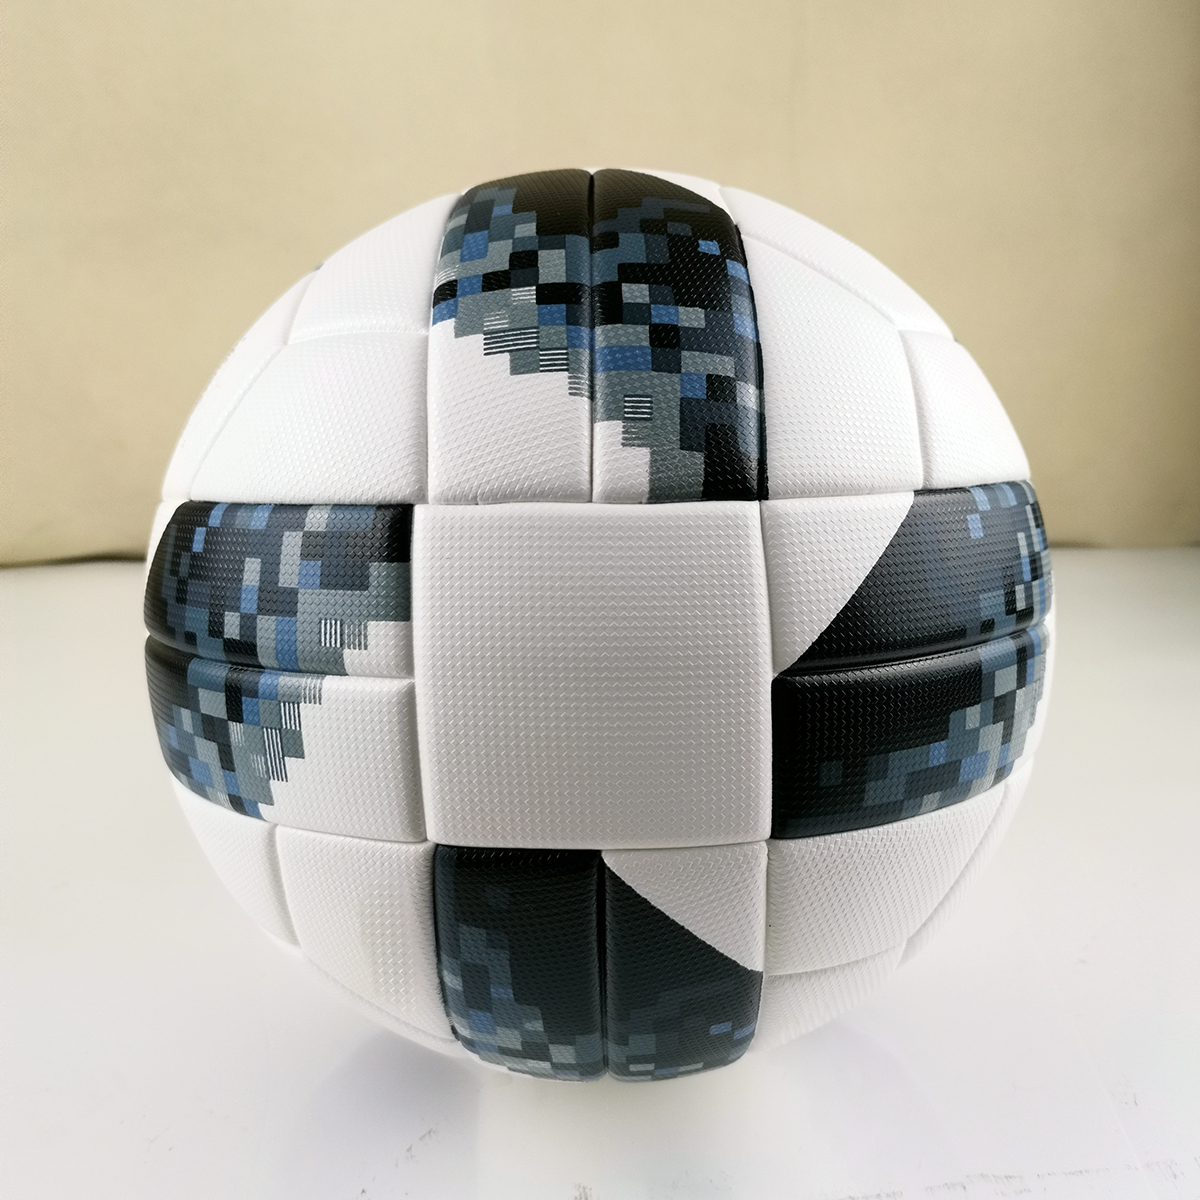 Official Size 5 Football Ball PU Granule Slip-resistant Seamless Soccer Ball Gift Goal Team Match Football Training Balls